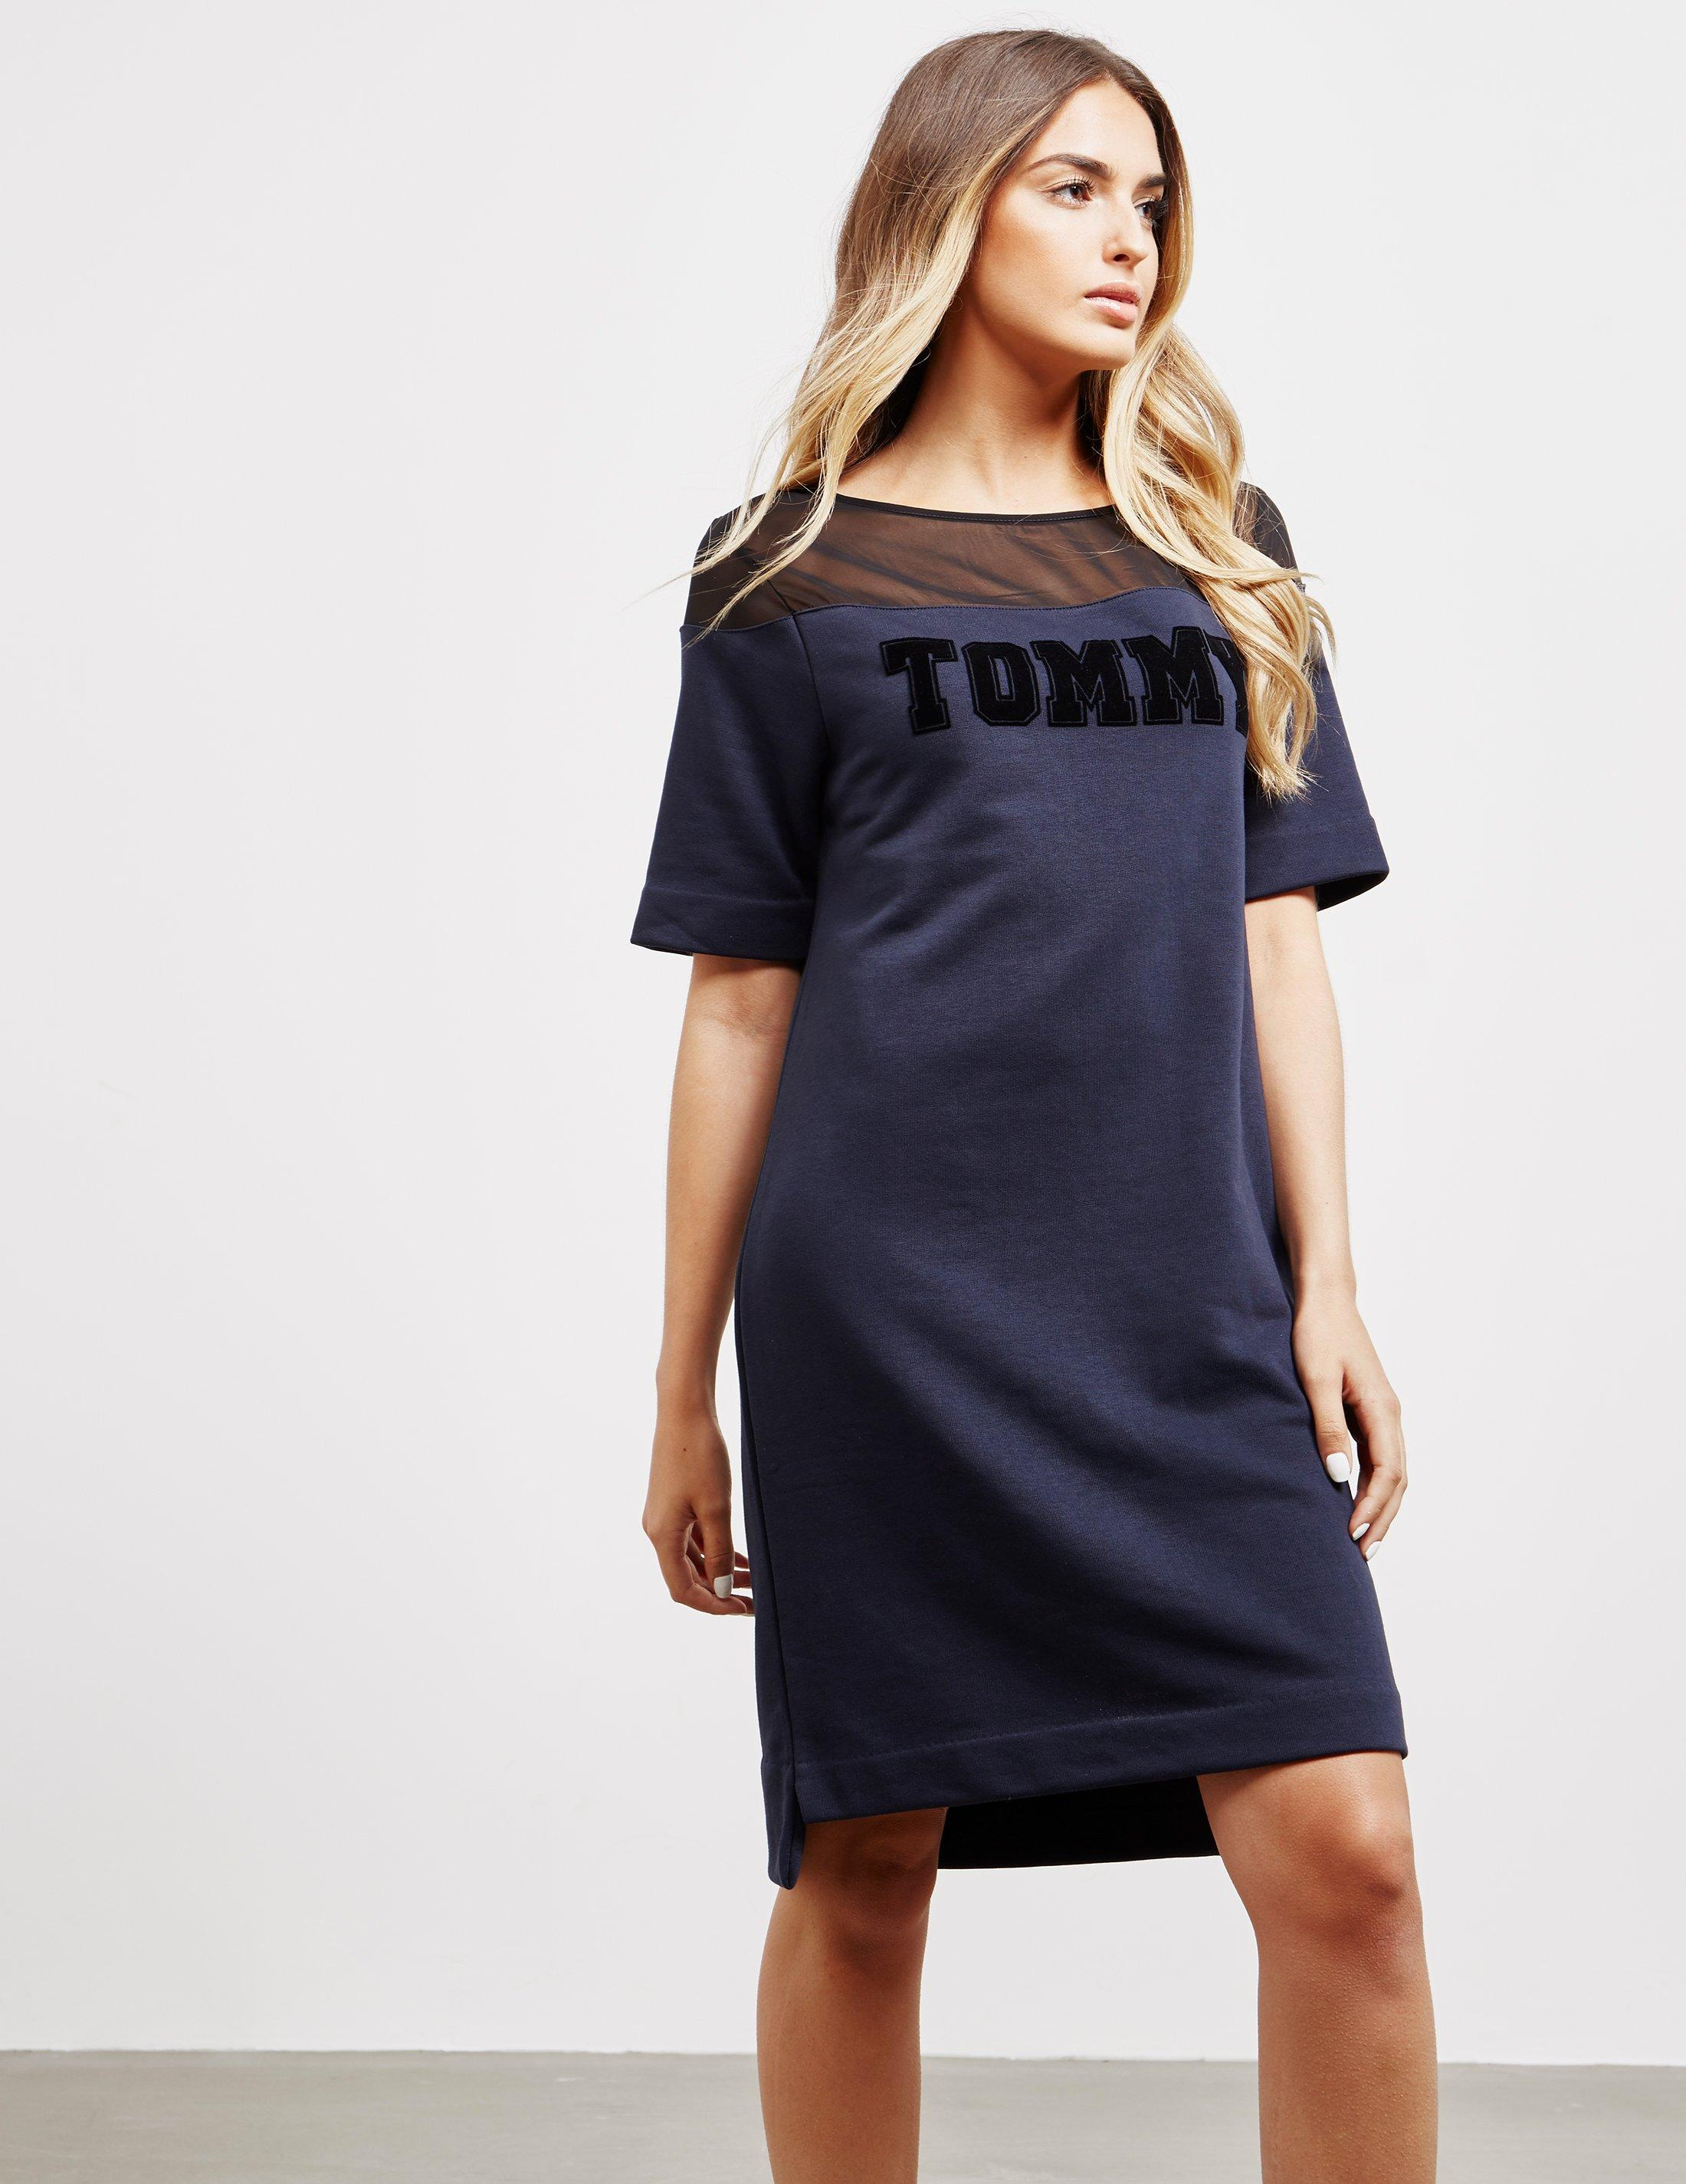 Tommy Dresses